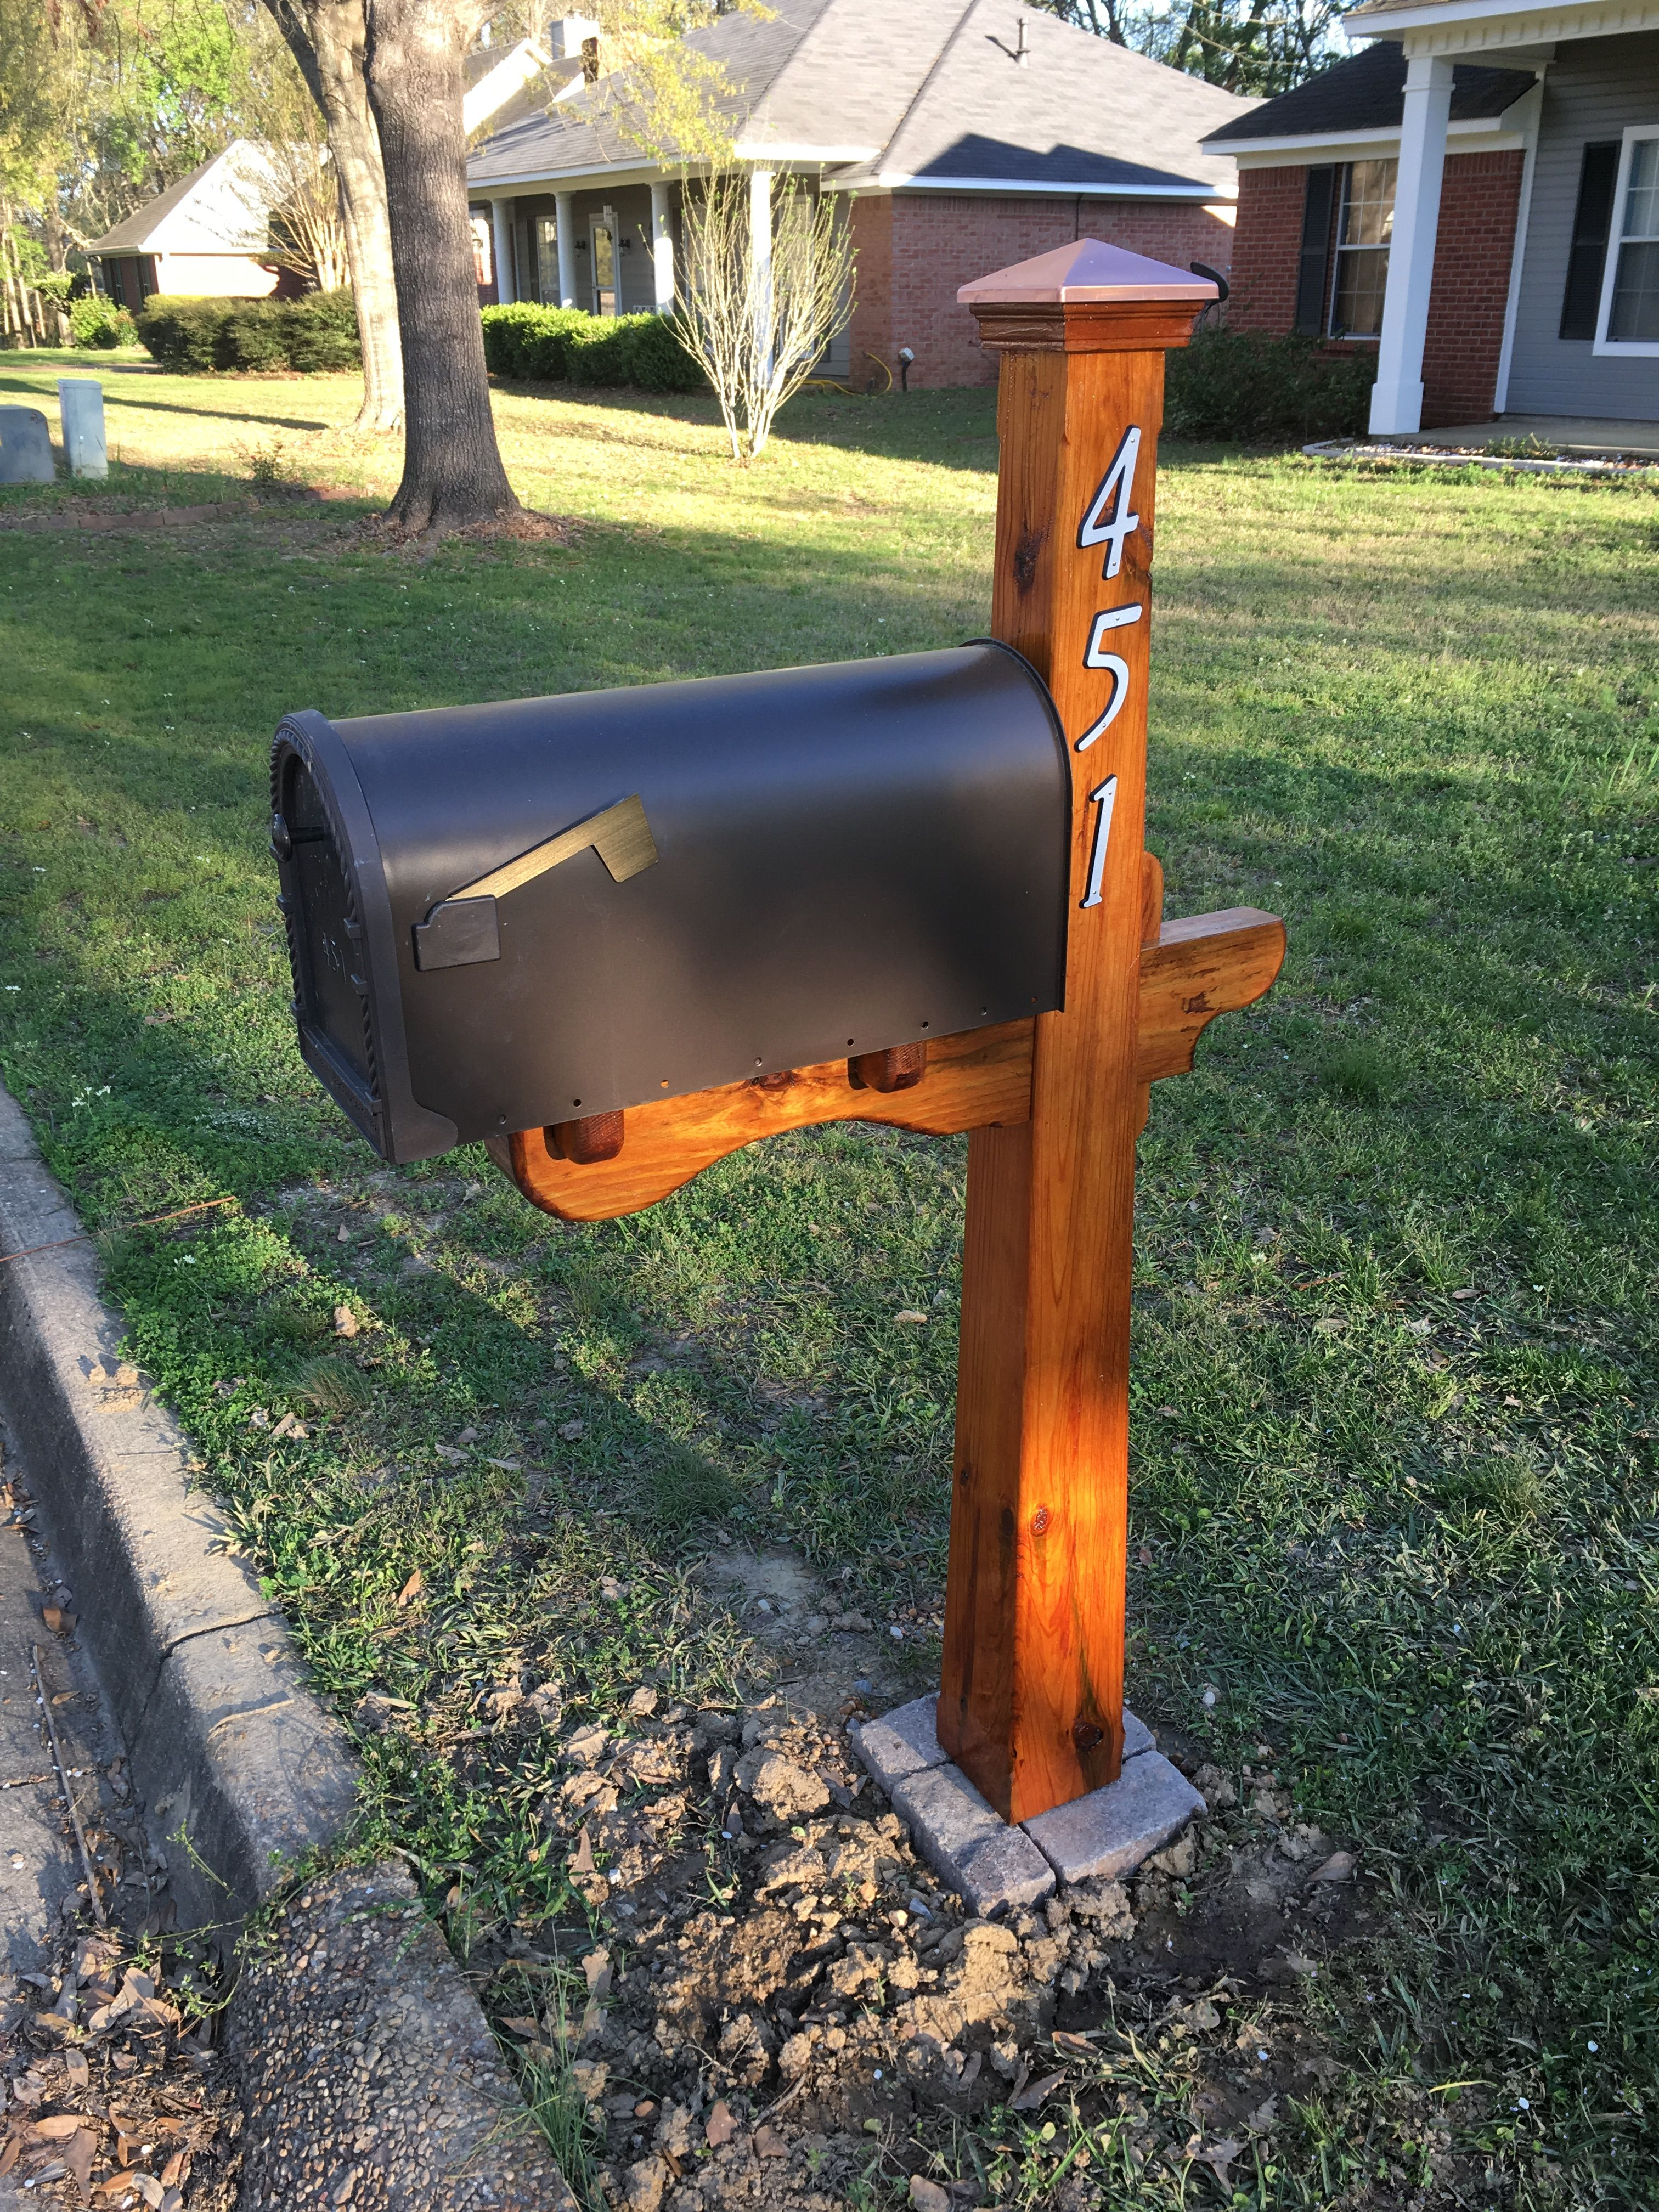 Tapered Post Mailbox Built Using 6x6 Treated Lumber With A Wedged Through Mortise And Tenon Unique Mailboxes Outdoor Decor Decor